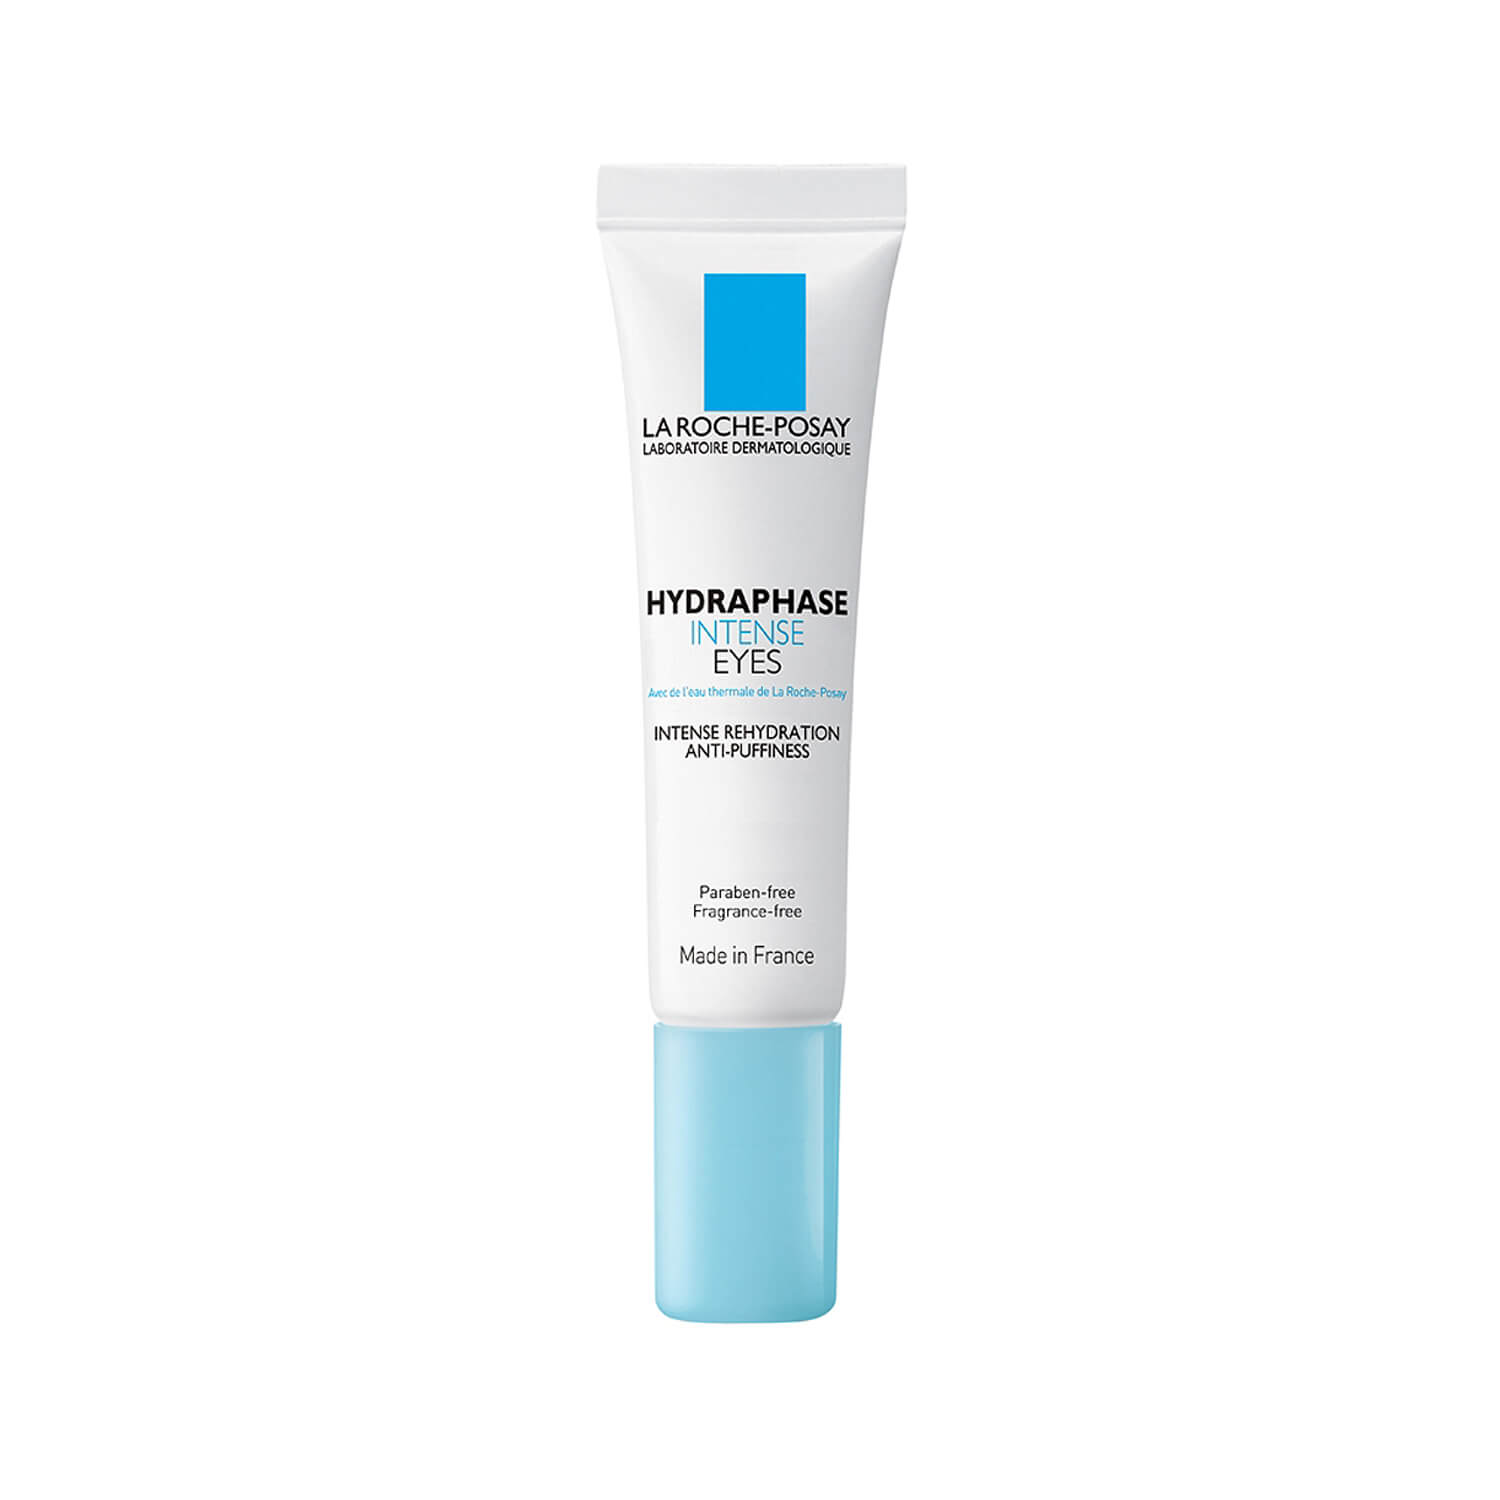 kem mắt La Roche Posay Hydraphase Intense Eye Cream.